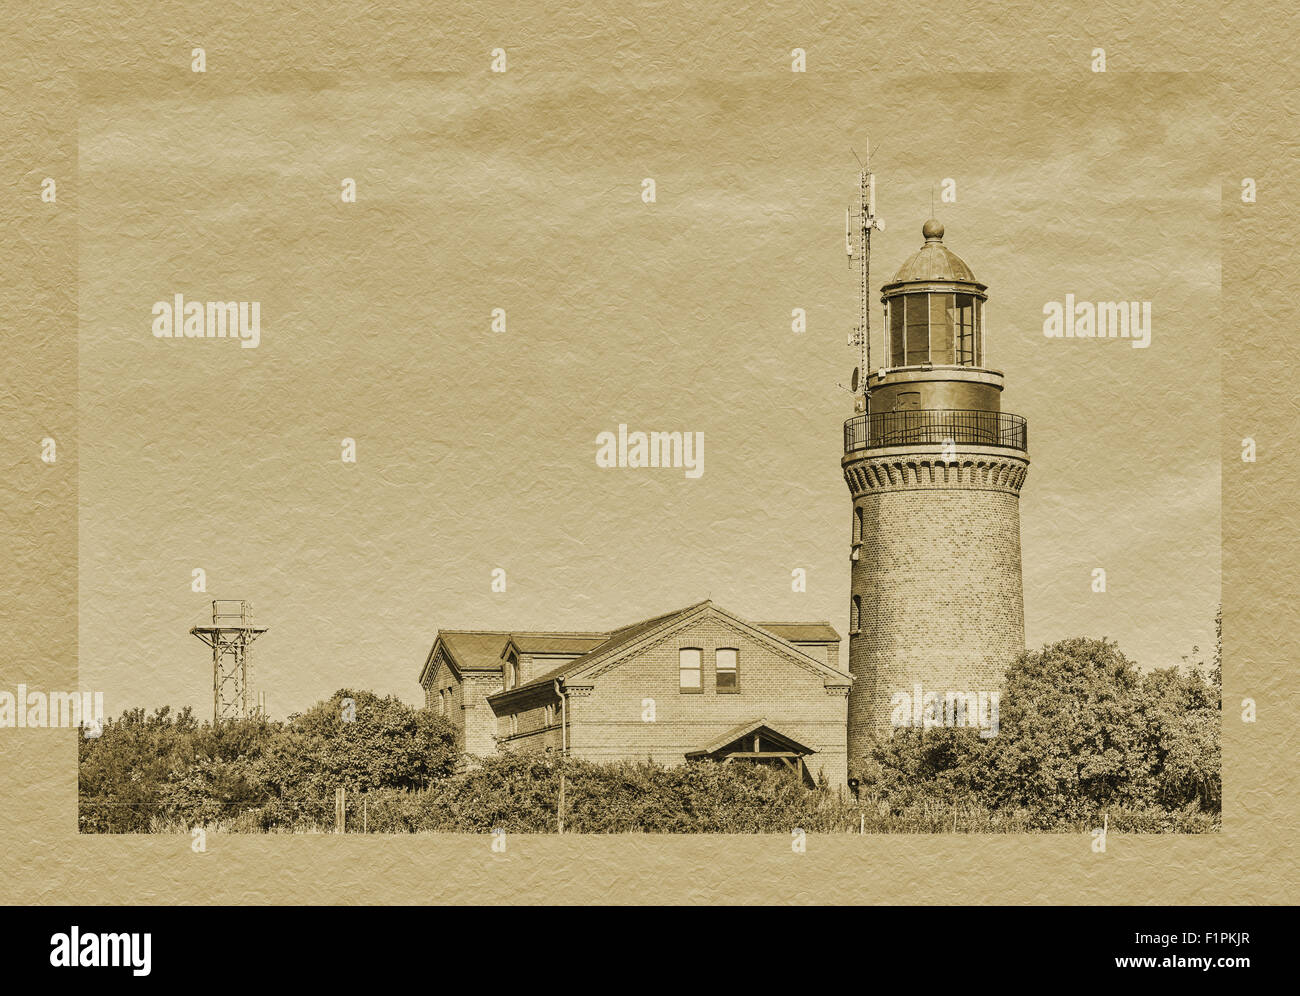 The lighthouse of Bastorf is located at the Bay of Mecklenburg, Rostock, Mecklenburg-Western Pomerania, Germany, - Stock Image